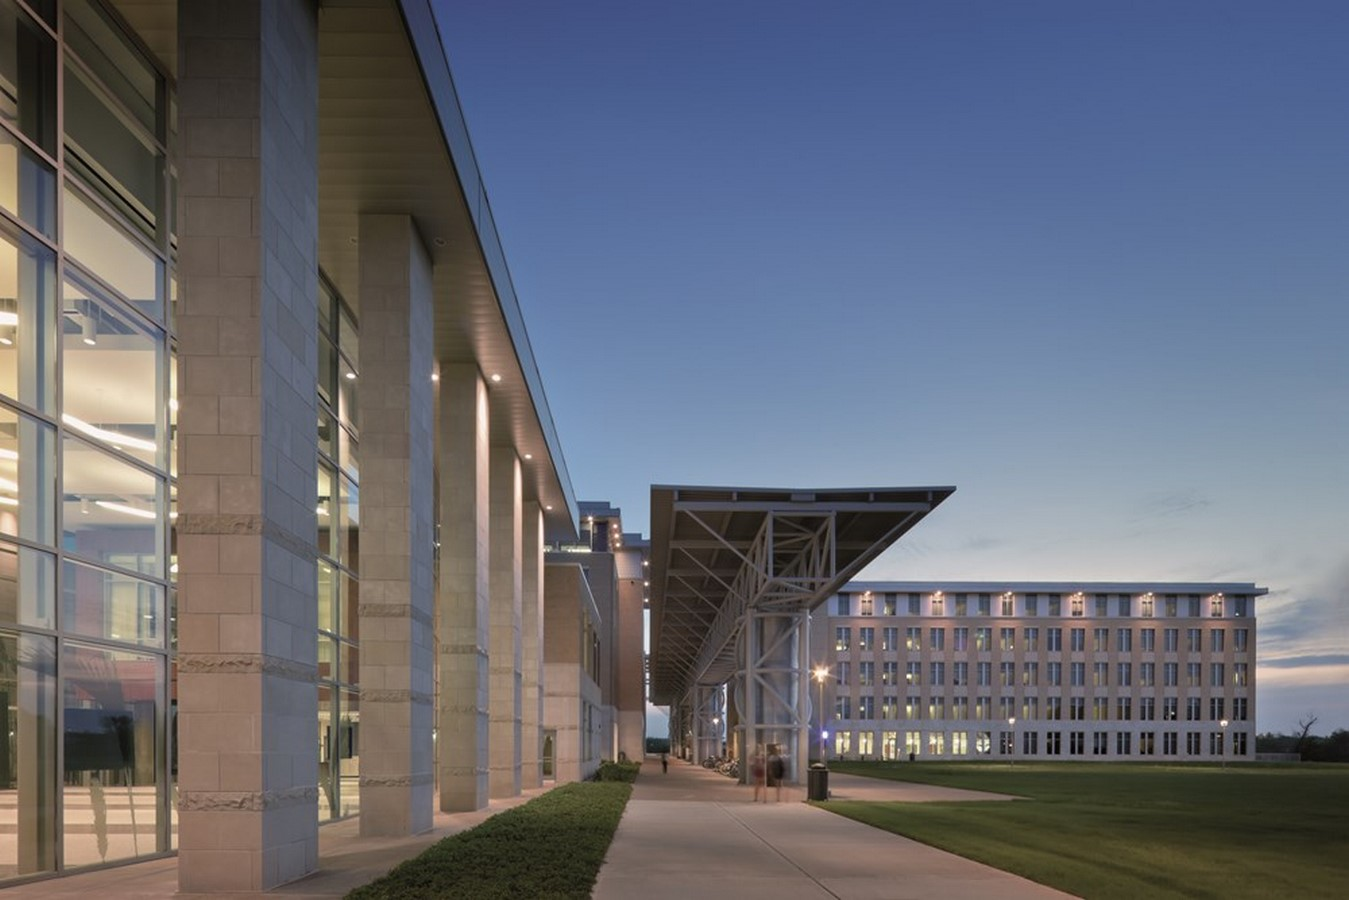 TEXAS A&M UNIVERSITY AGRICULTURE AND LIFE SCIENCES COMPLEX - Sheet2